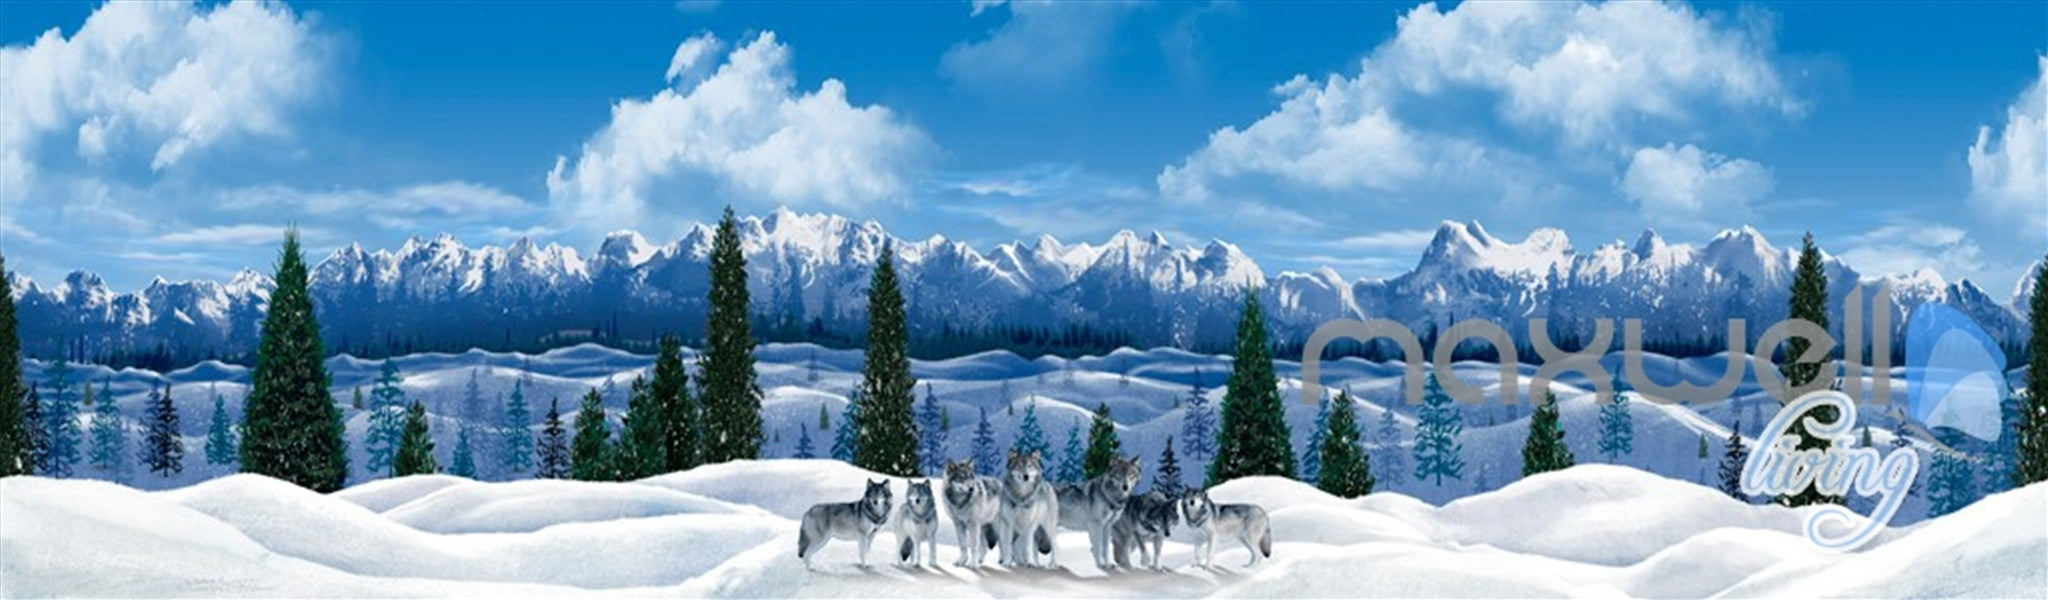 3d snow mountain wolf sky clouds ceiling entire room wallpaper 3d snow mountain wolf sky clouds ceiling entire room wallpaper wall mural idcqw 000170